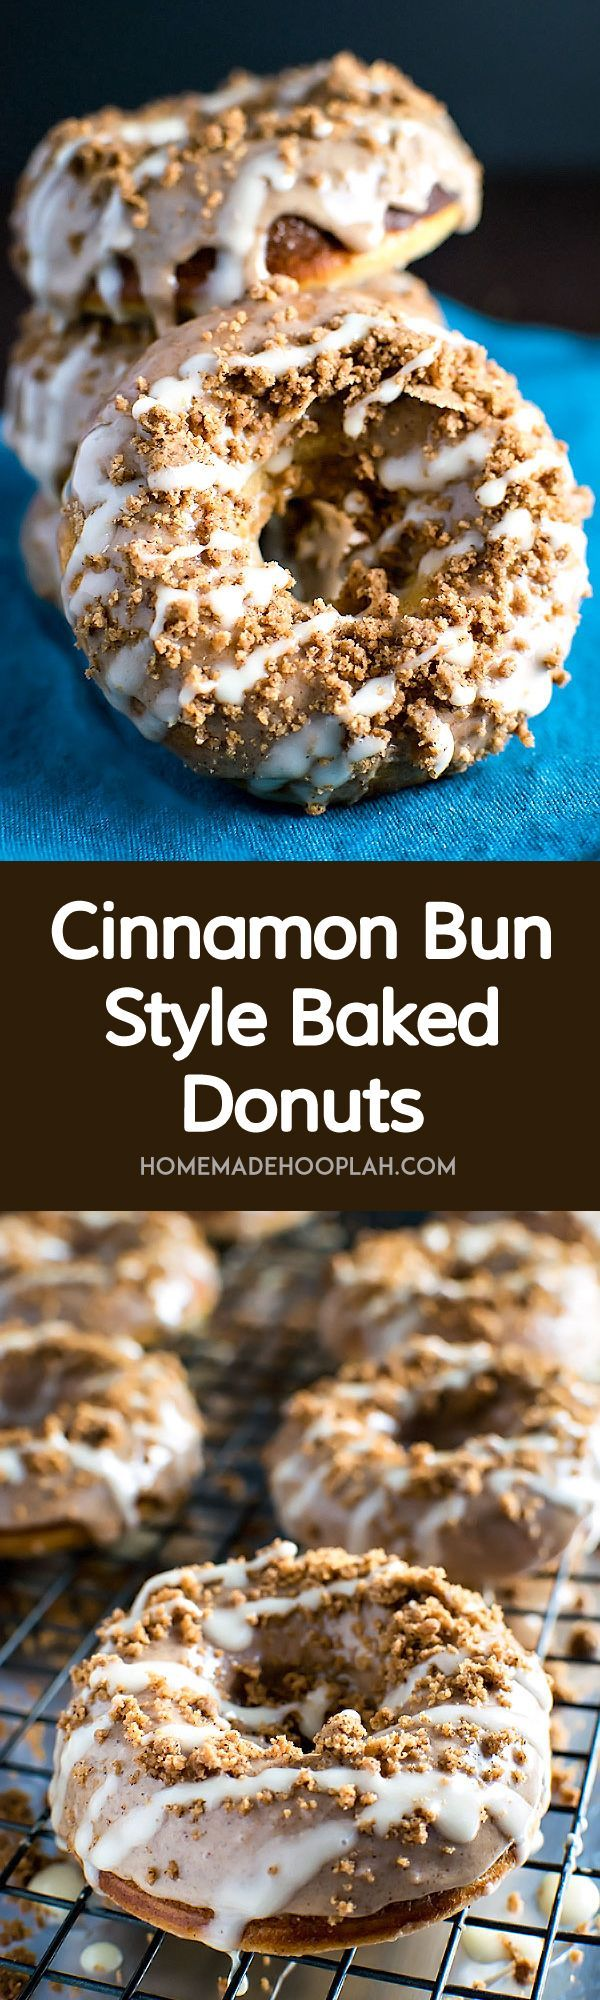 Cinnamon Bun Style Baked Donuts! Moist and fluffy cinnamon bun donuts that are covered in cinnamon glaze, cinnamon crumbles, and vanilla frosting. | HomemadeHooplah.com